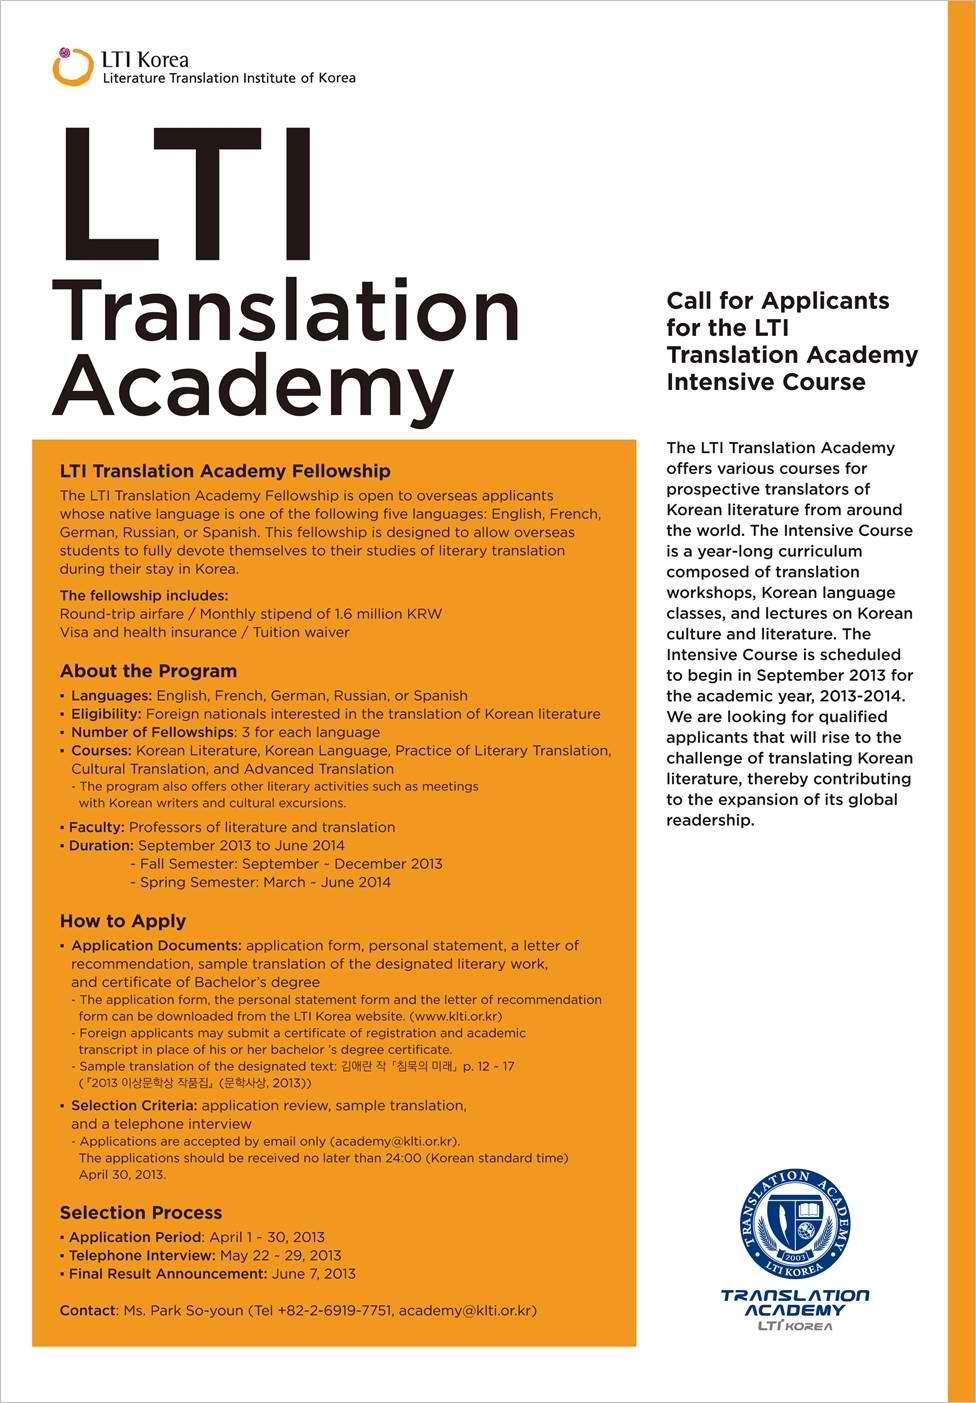 The LTI Translation Academy